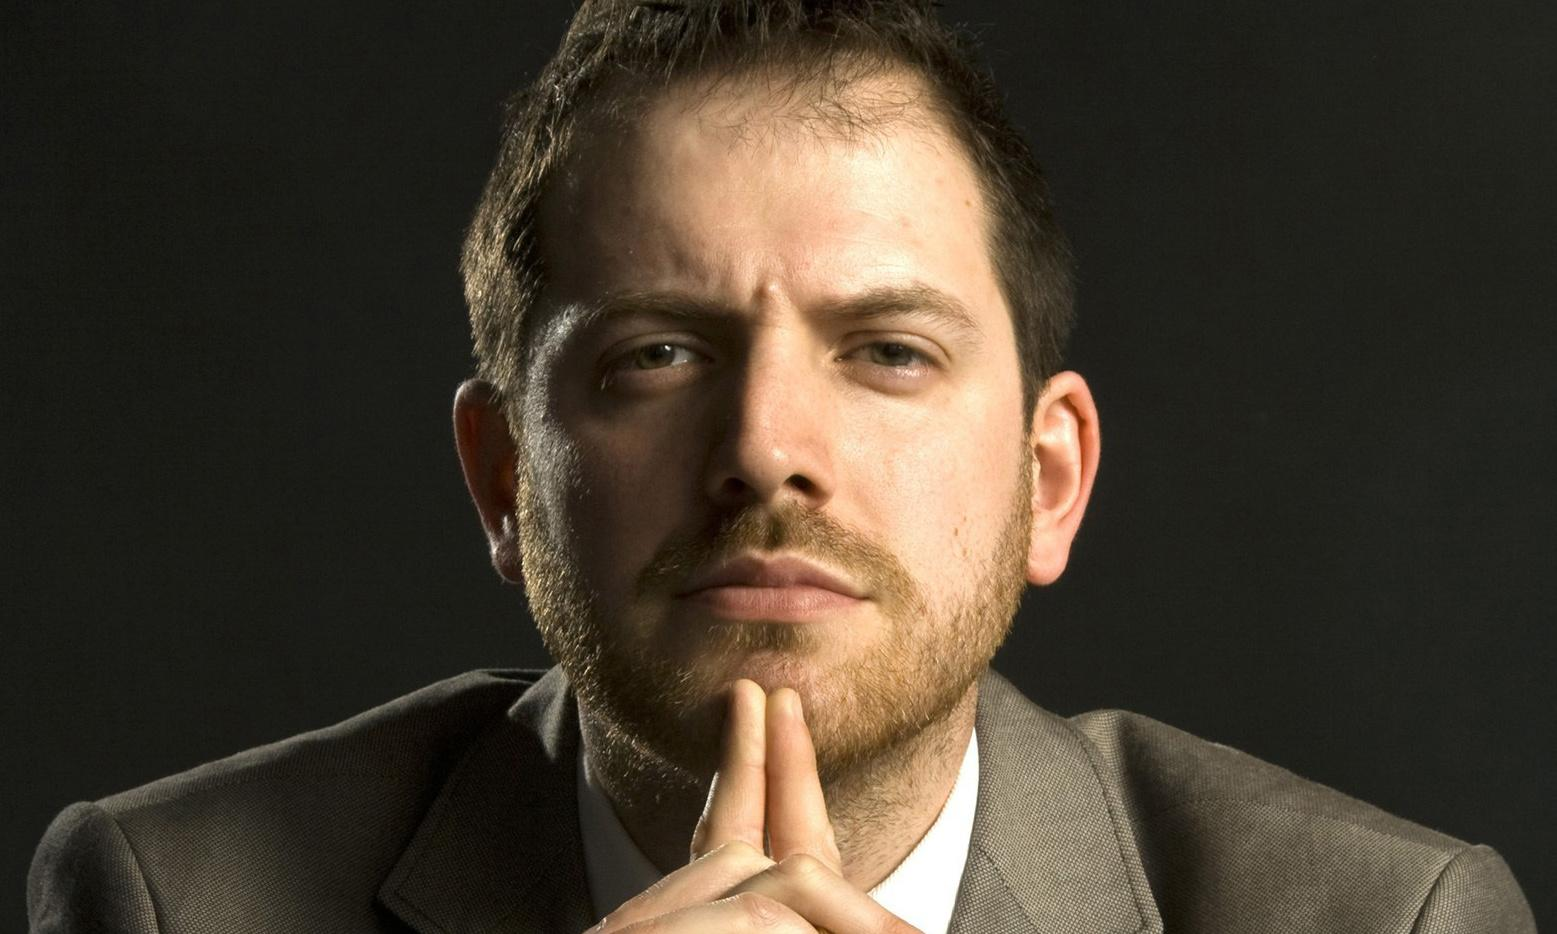 Joe Abercrombie: 'I think the combination of violence and humour wasn't an immediate easy sell'